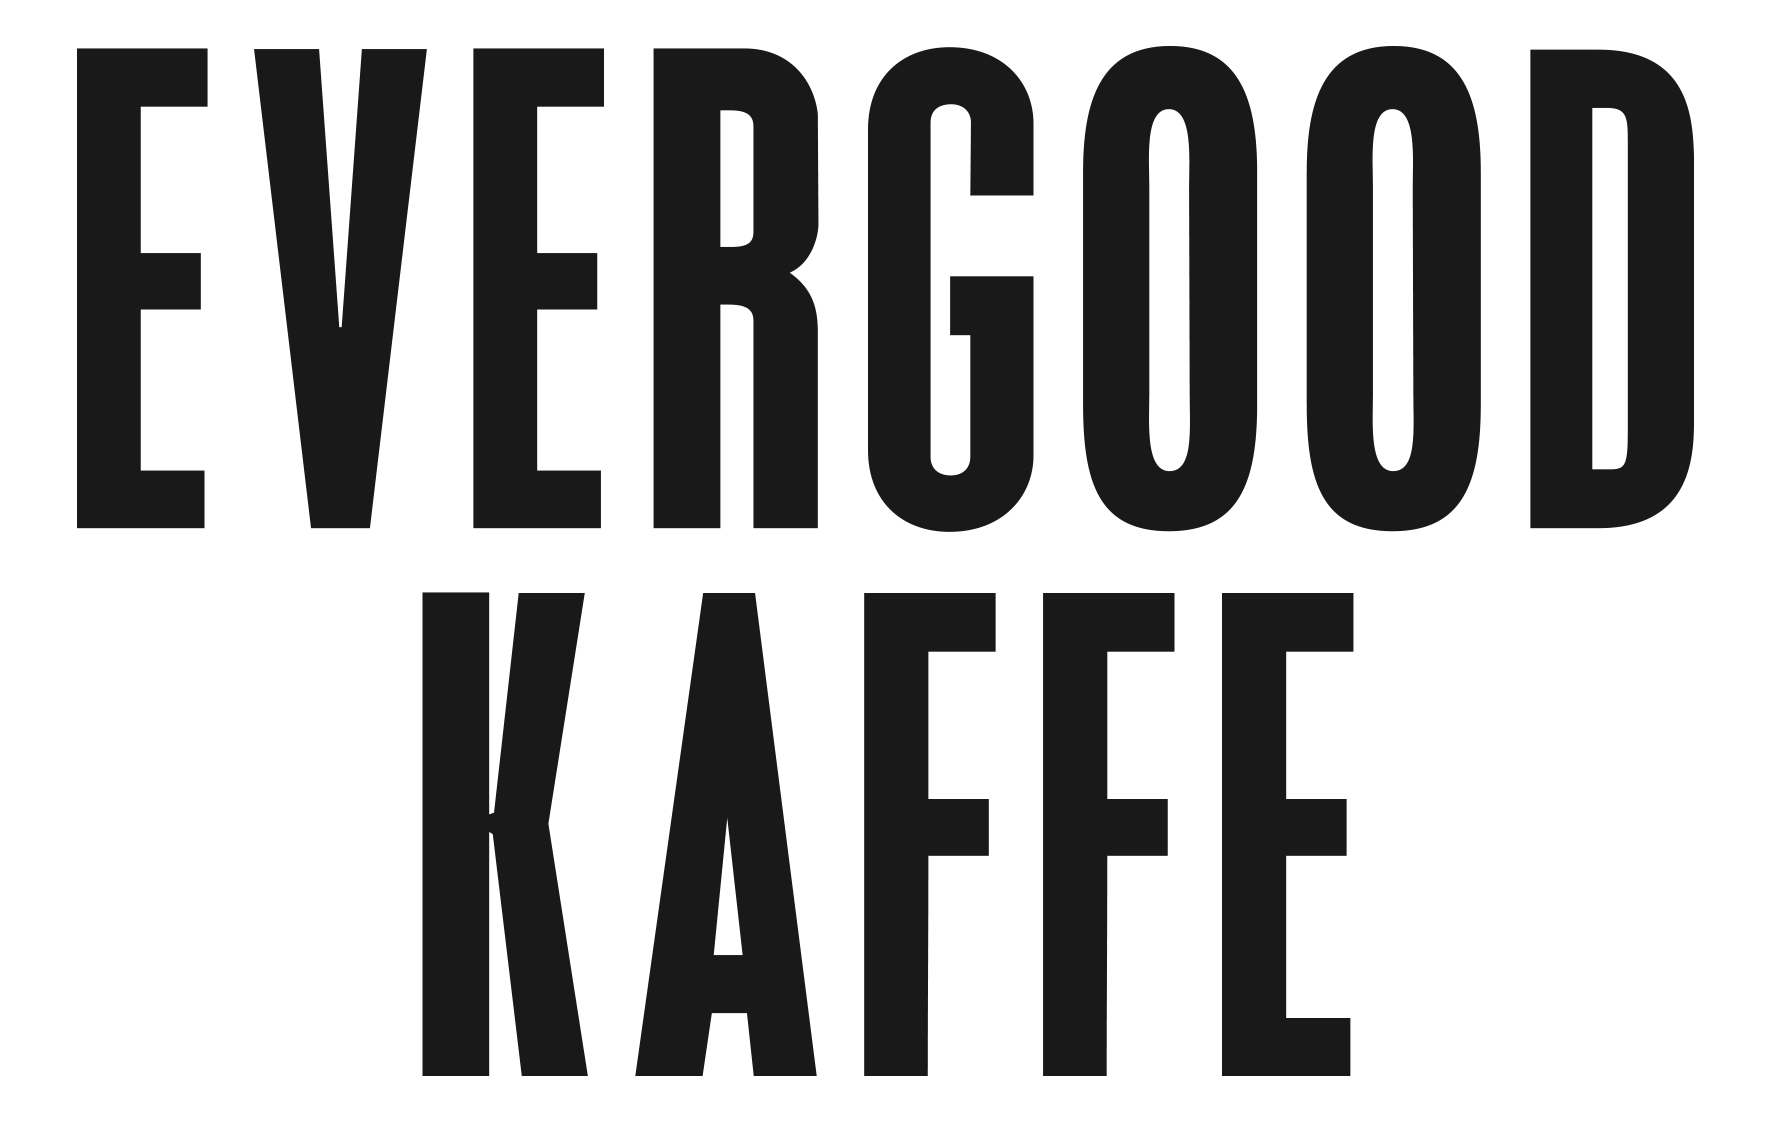 evergood_kaffe_to_linjer sort.jpg